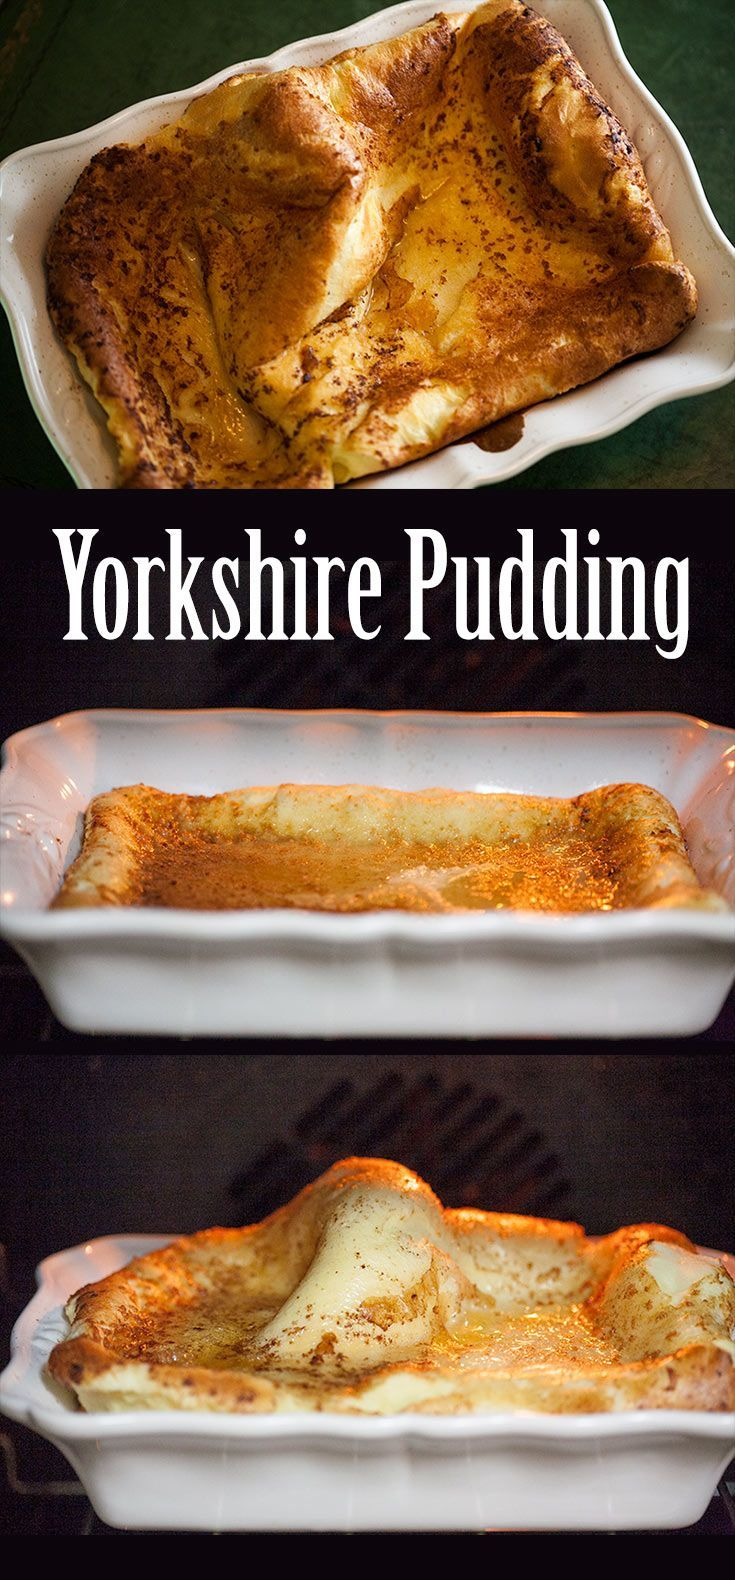 Traditional Yorkshire Pudding! Serve with roast beef, batter of flour, salt, eggs, butter, milk, cooked in pan with roast drippings. On SimplyRecipes.com